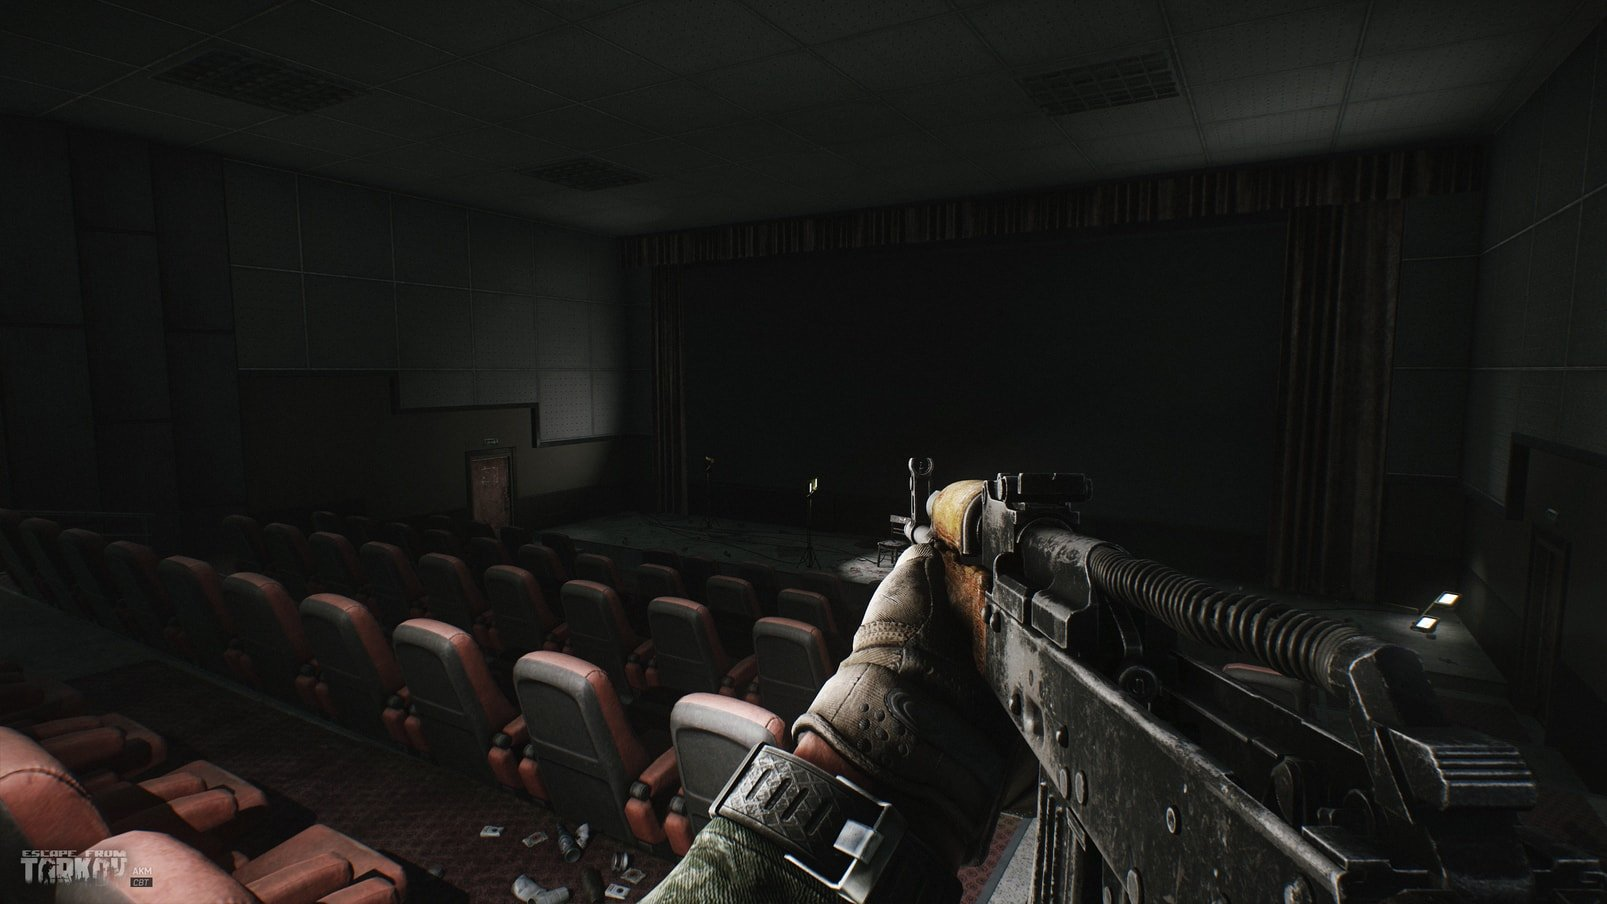 Escape from Tarkov Dev Diary